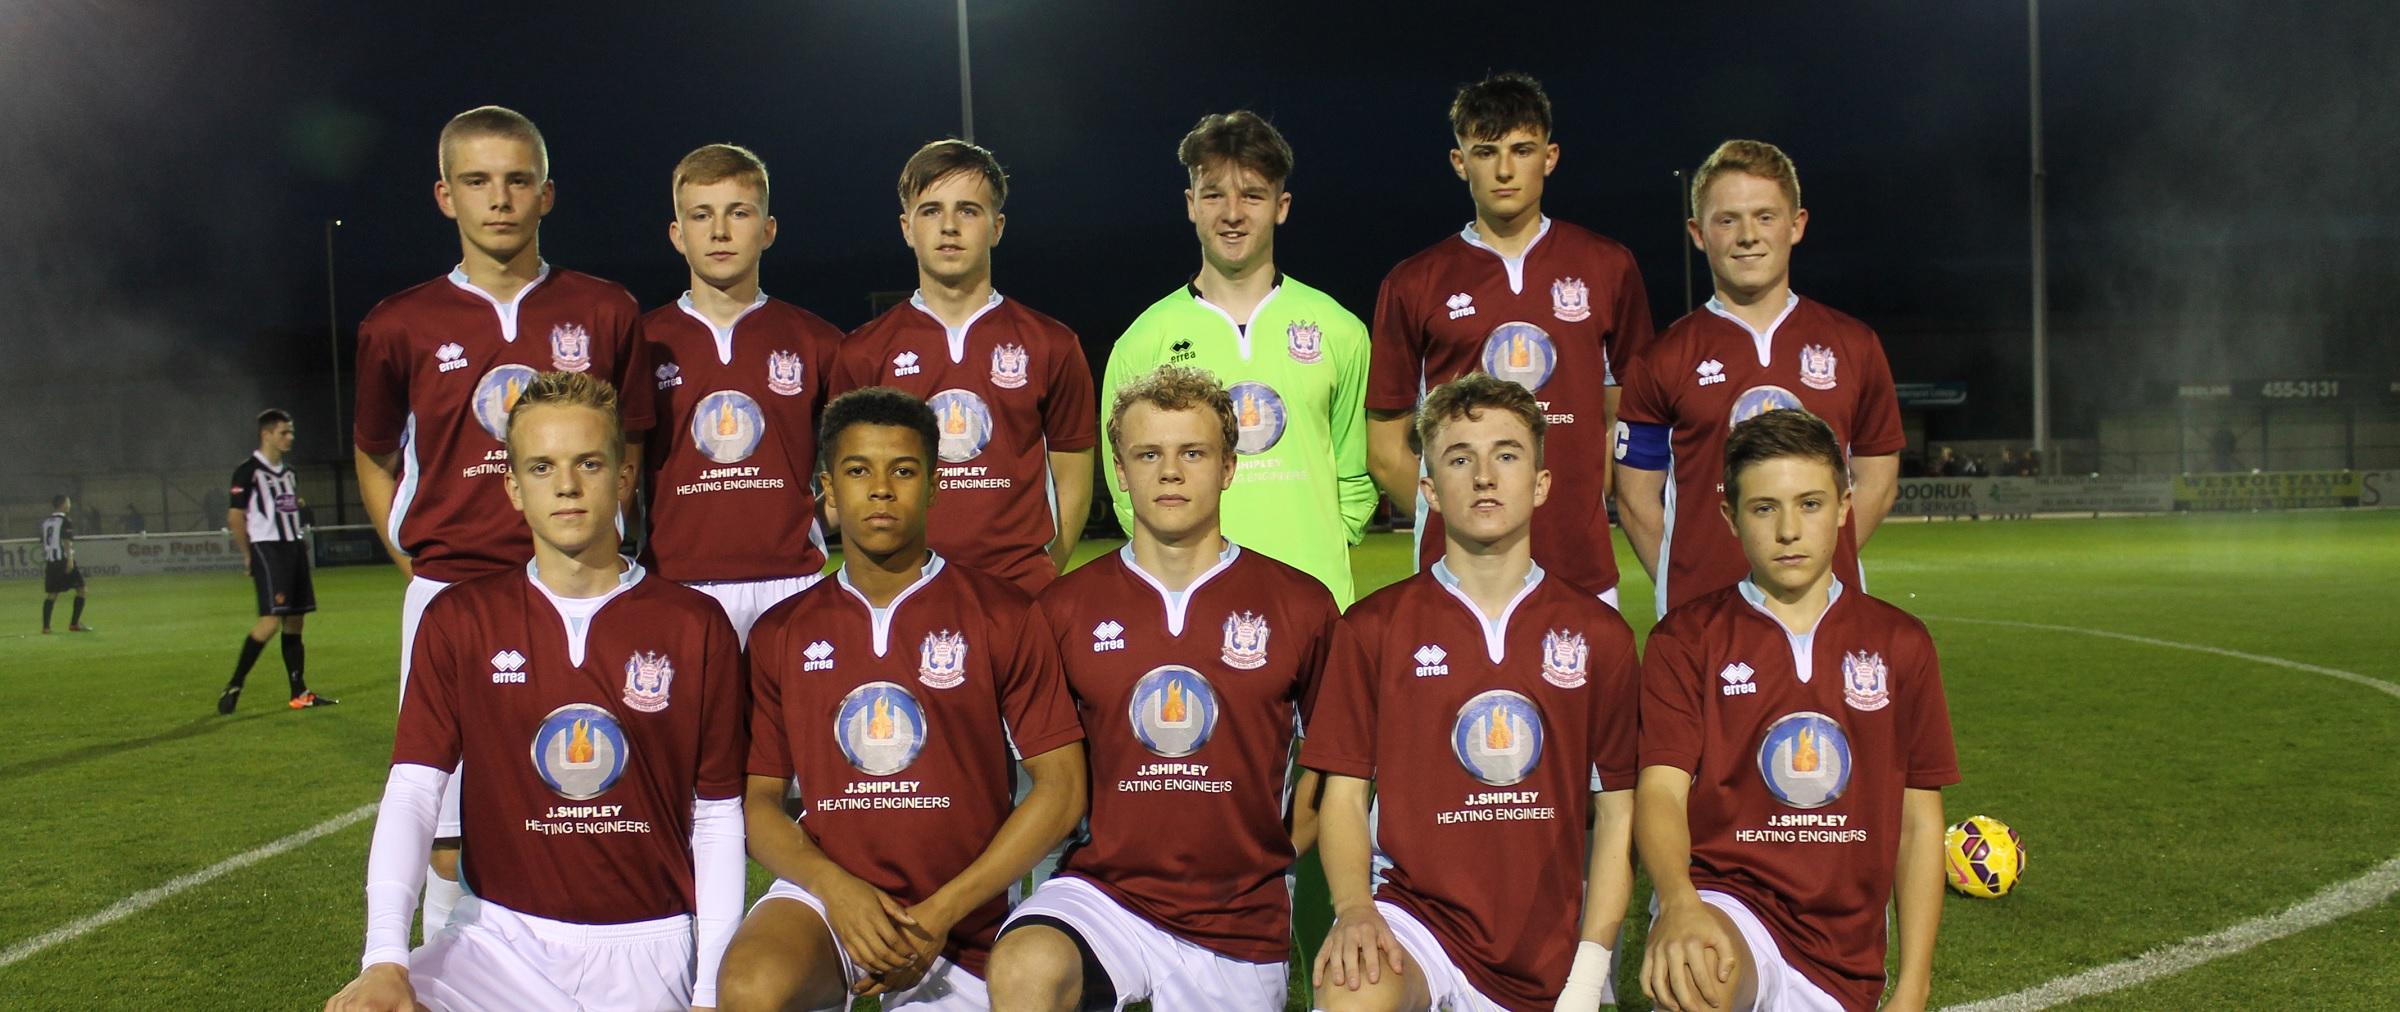 Academy set to visit Stockton Town in FA Youth Cup